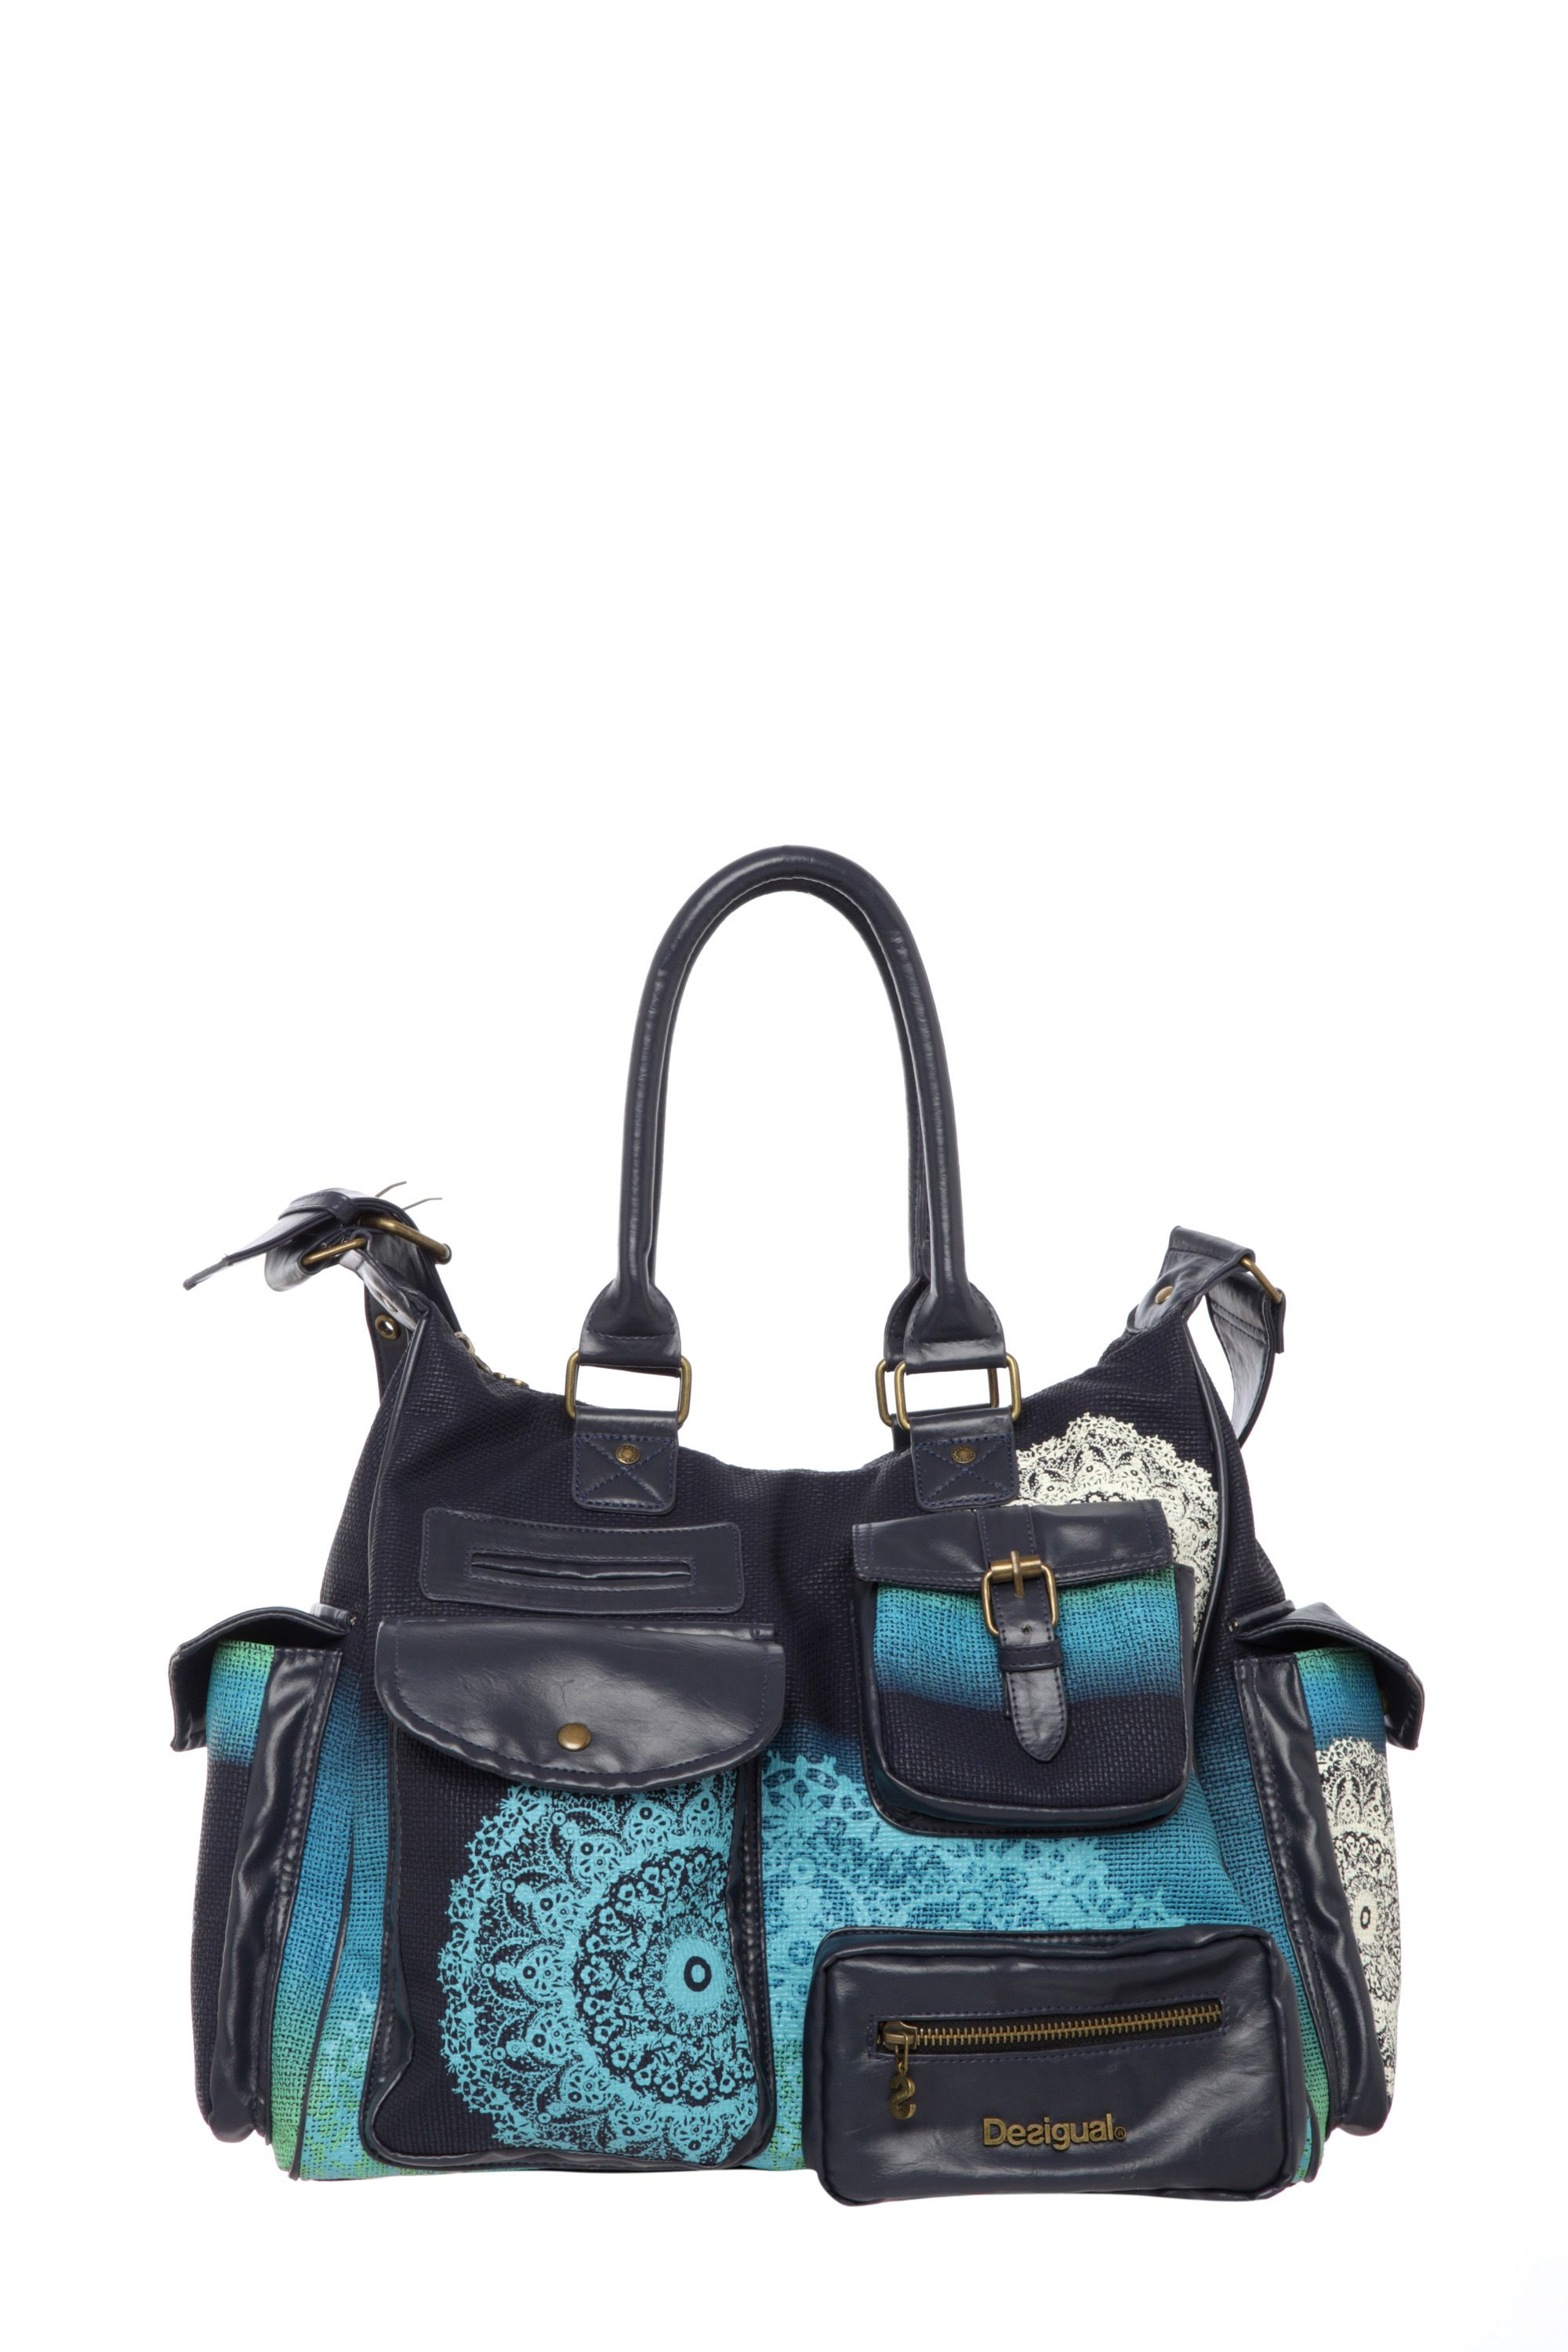 London alguero bag